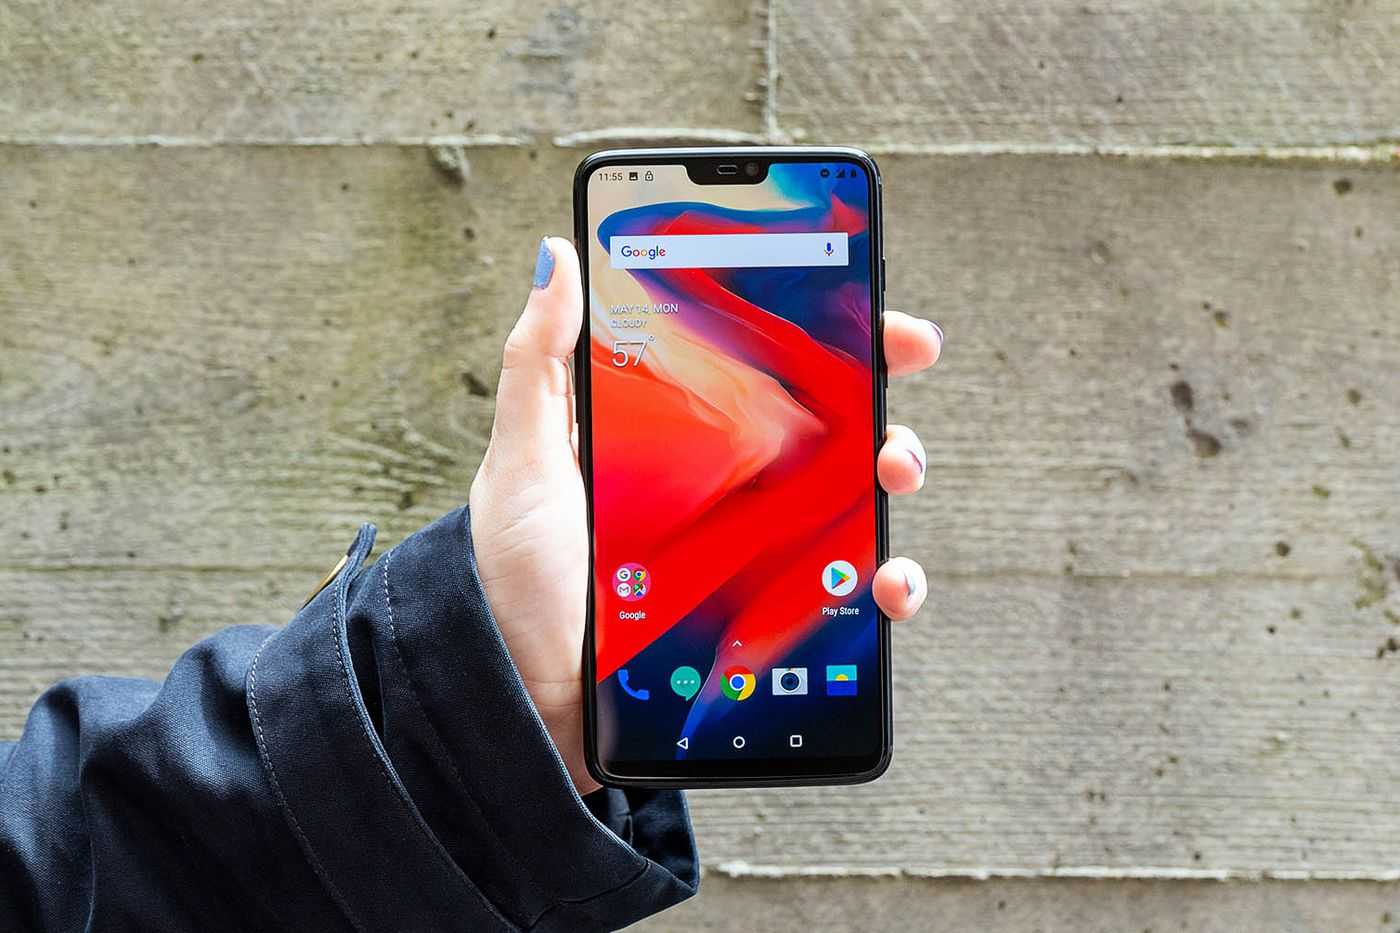 Oneplus 6 announced with glass back and 6.3 inch display